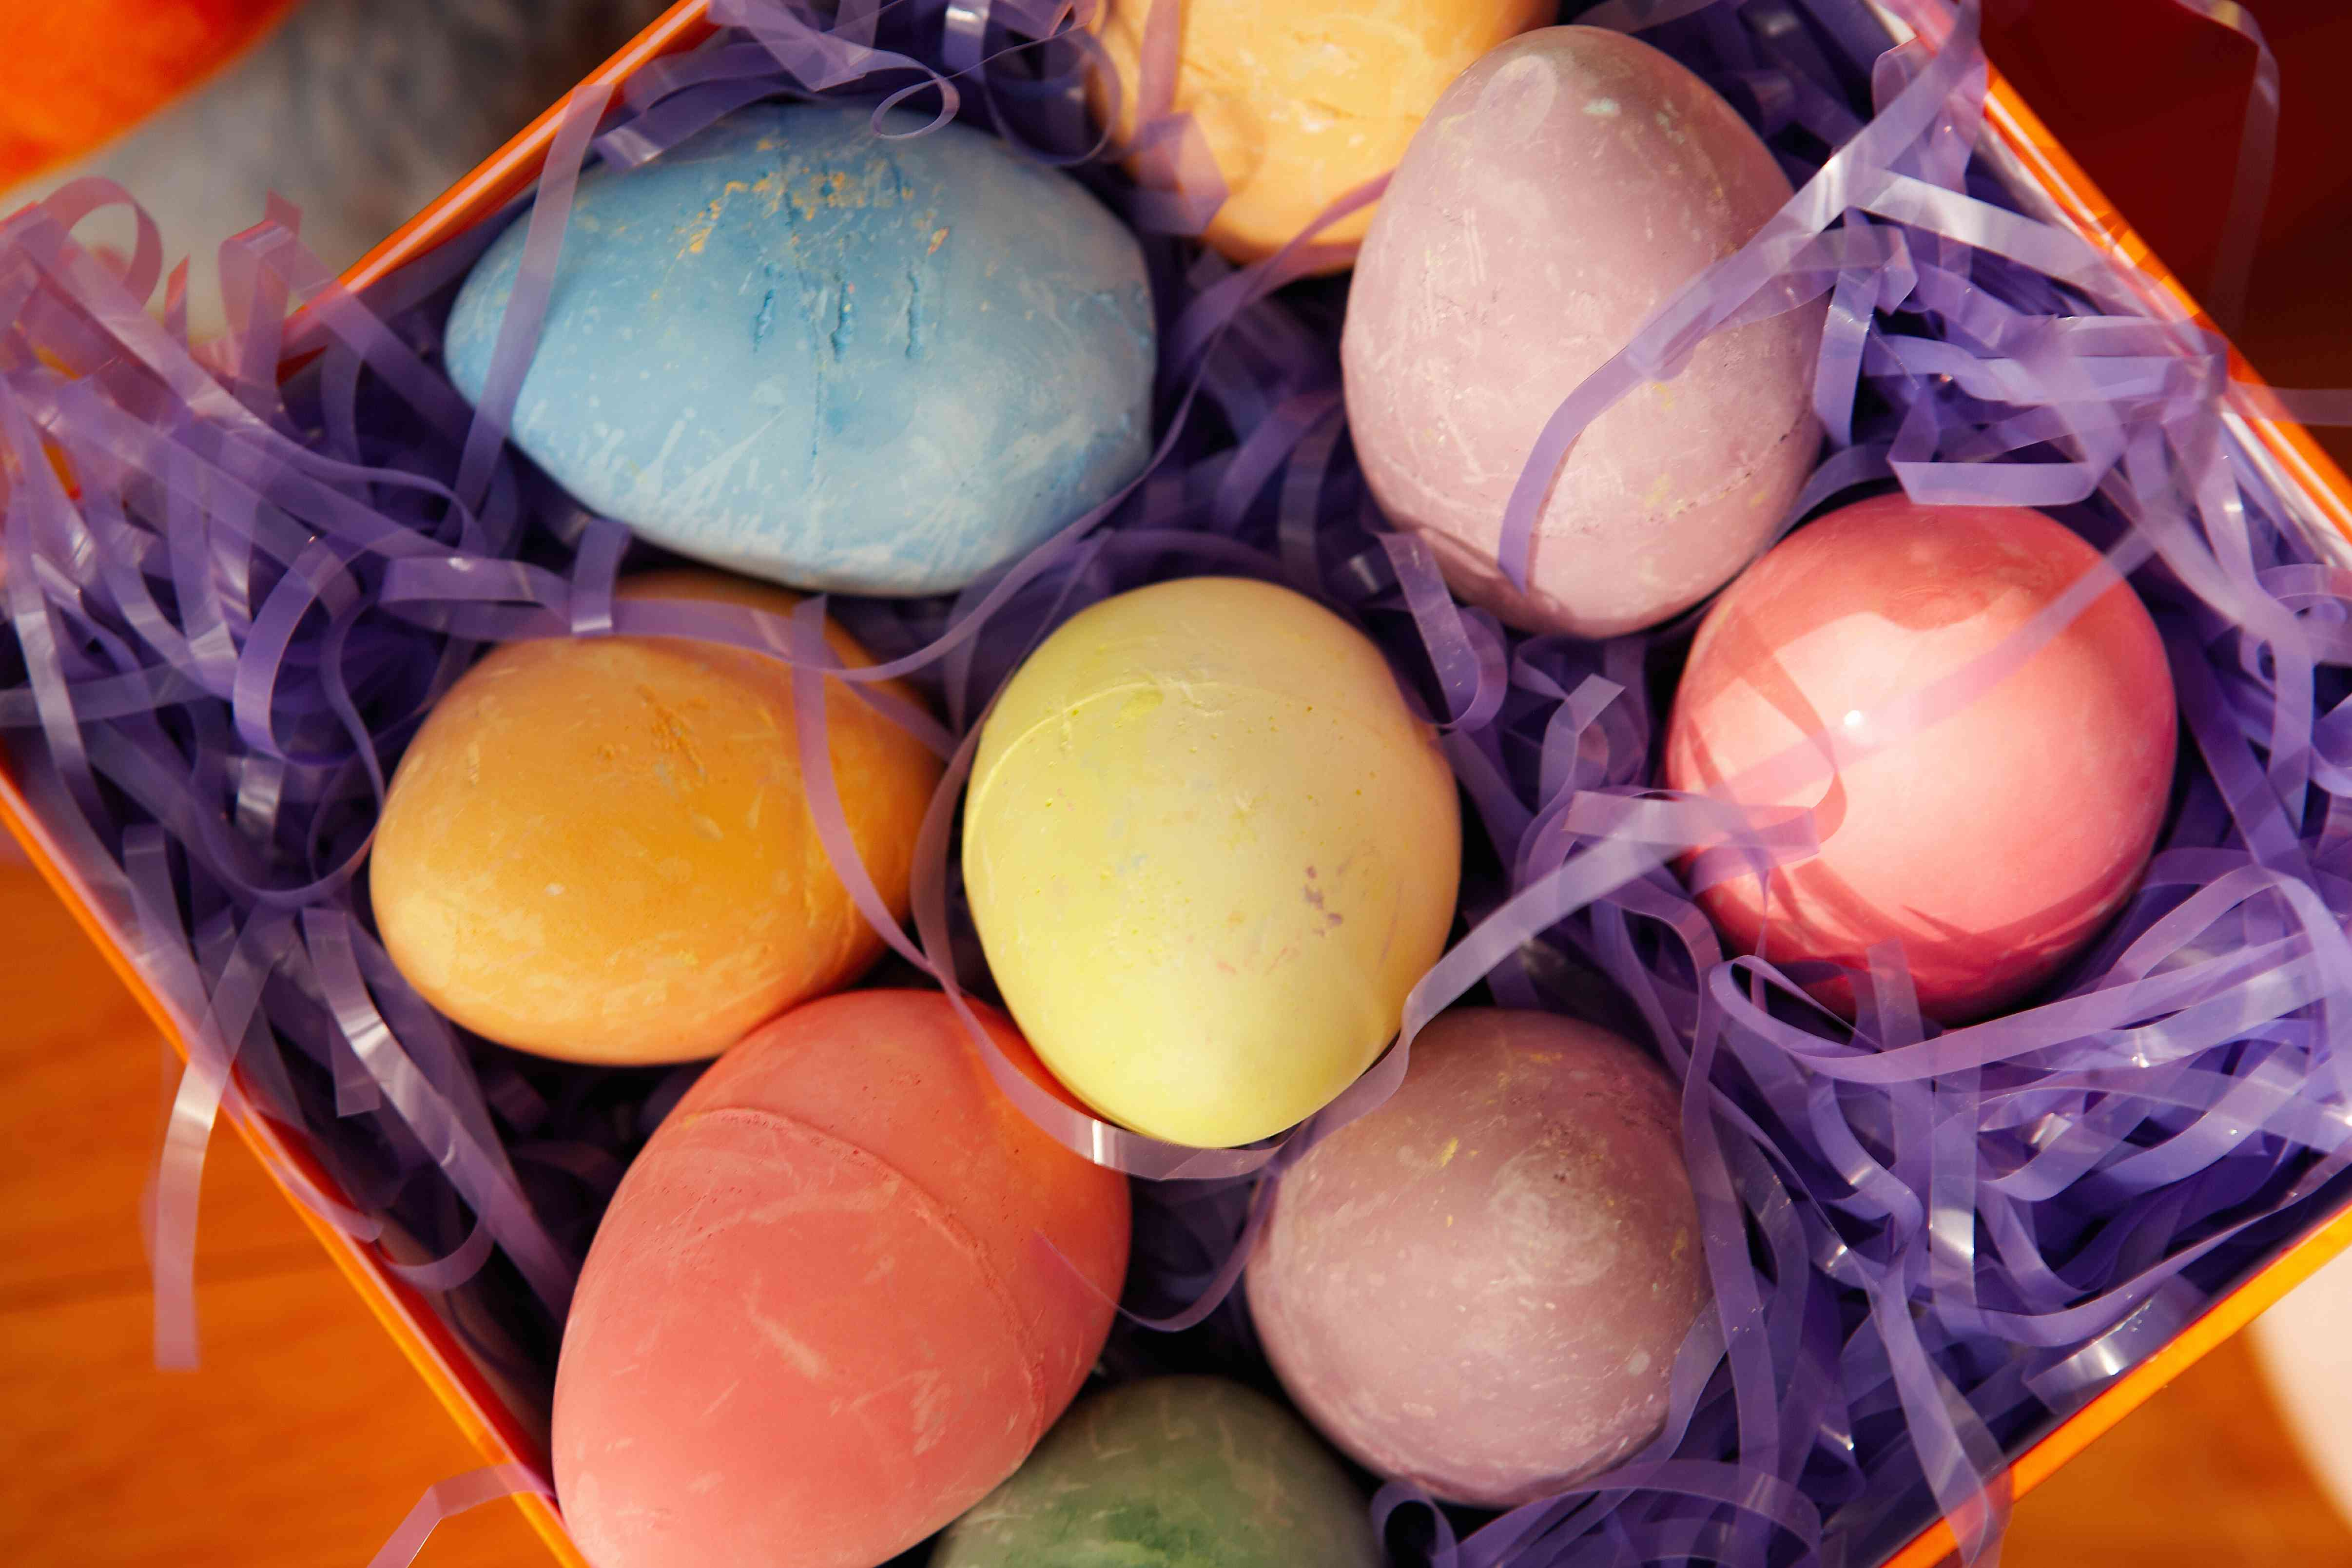 Dyed Easter eggs in box